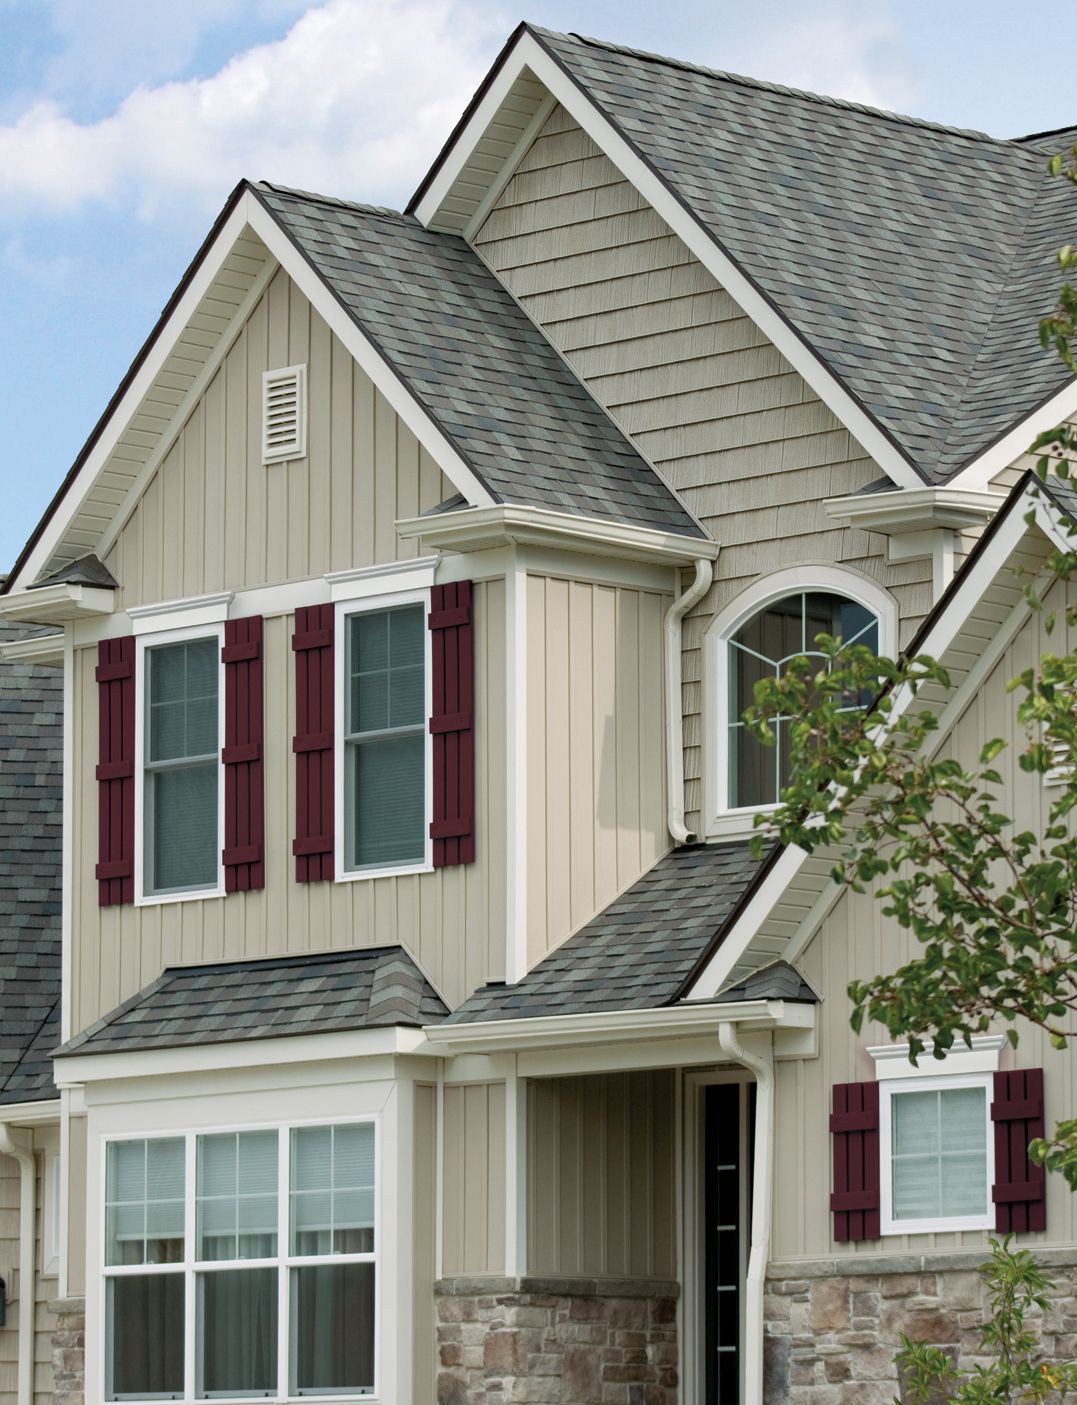 Exterior Siding Ideas | Mid-America on House Siding Ideas  id=62103